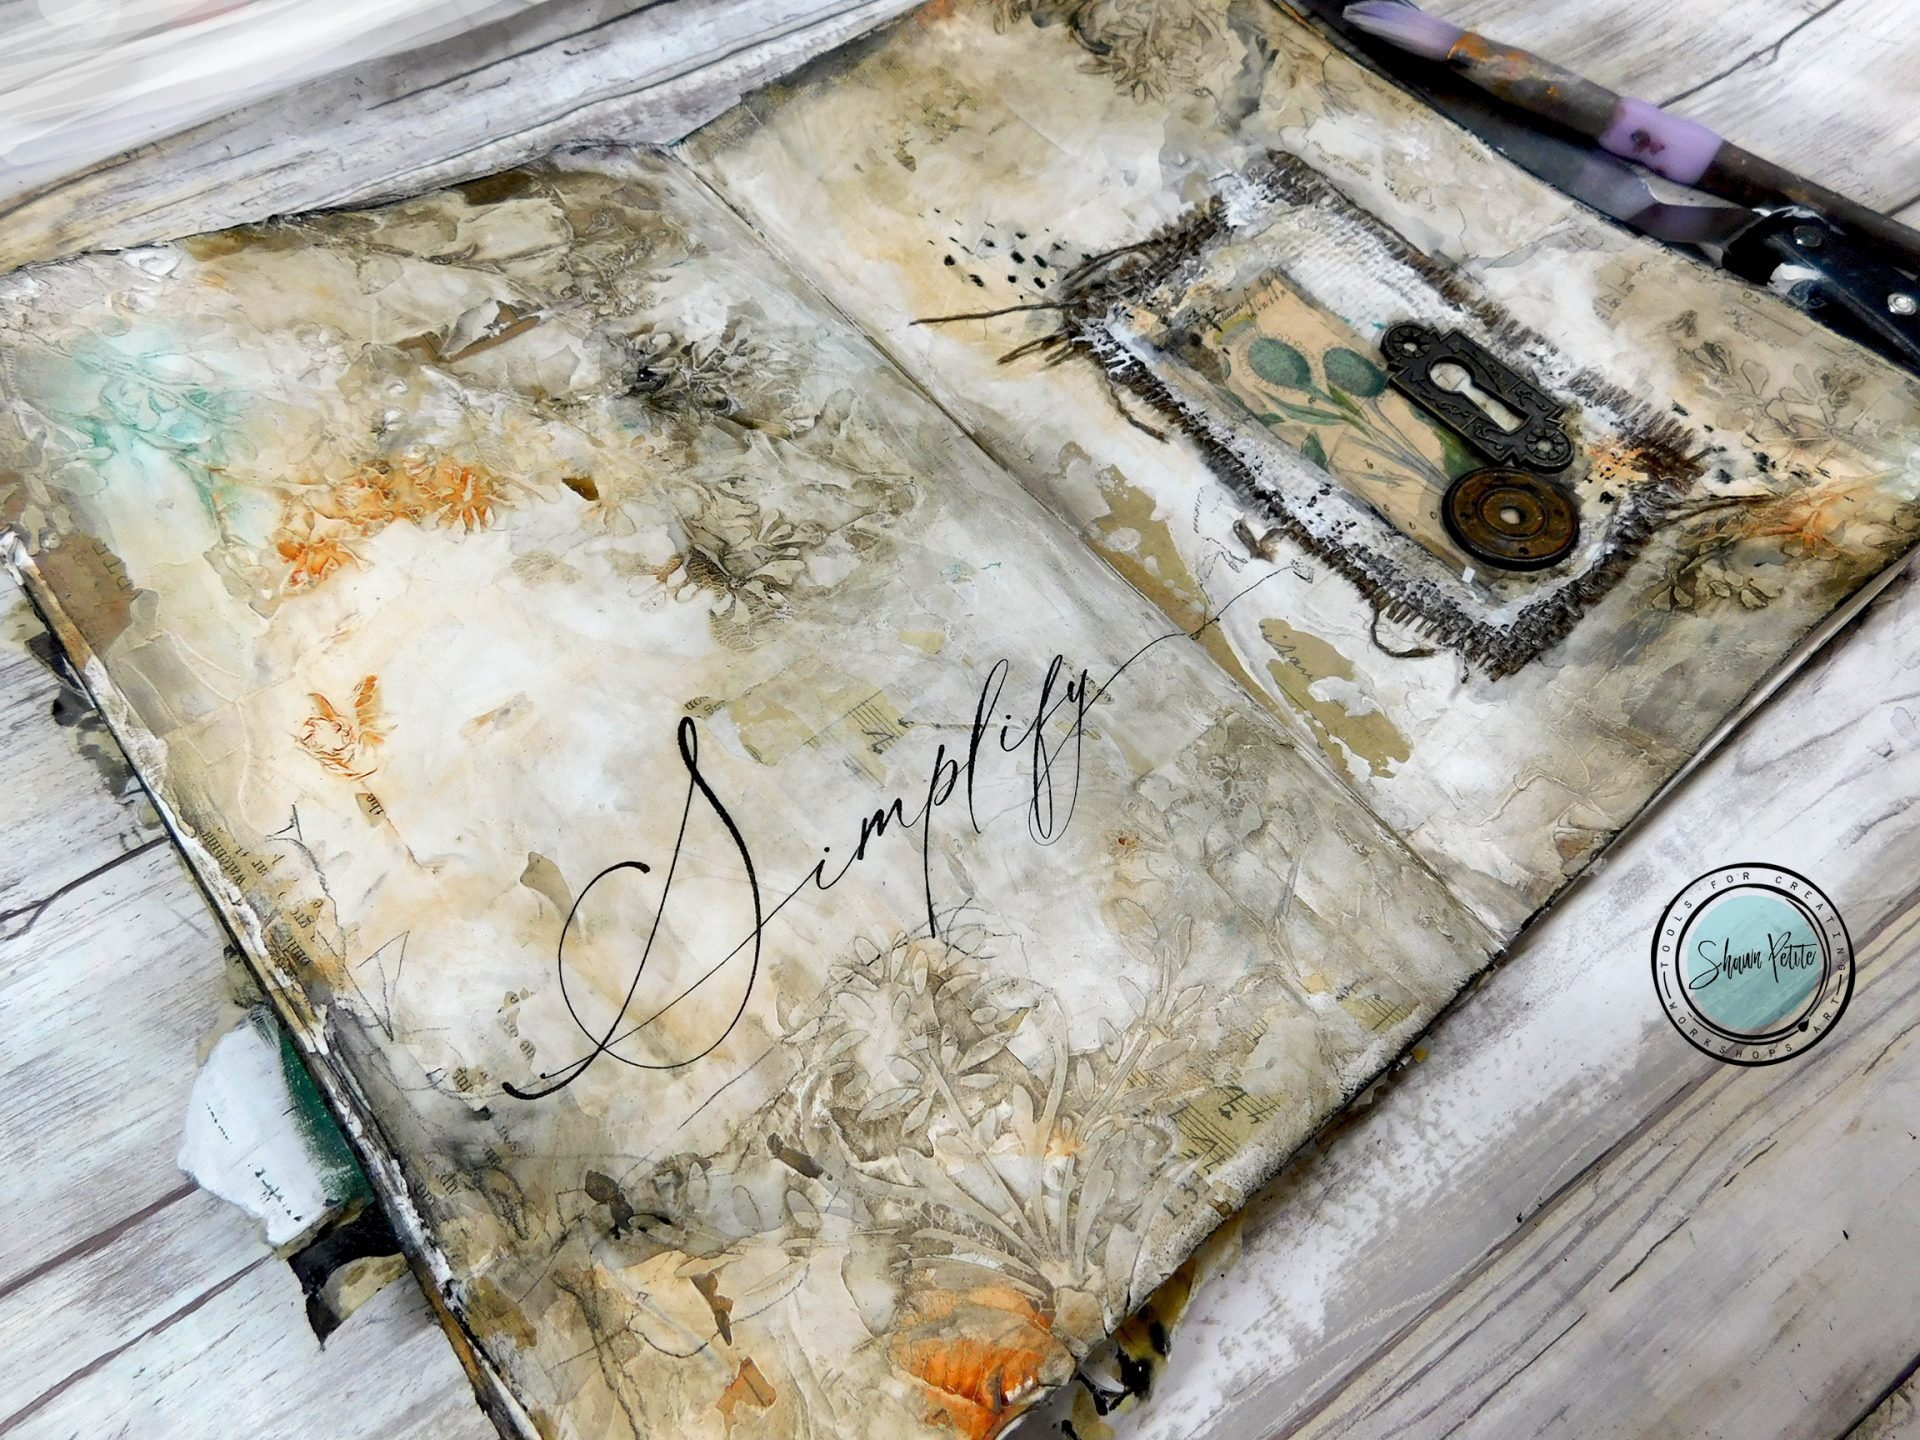 Simplify textured journal page with texture paste, gesso and stenciling sunday inspiration 8-15-21